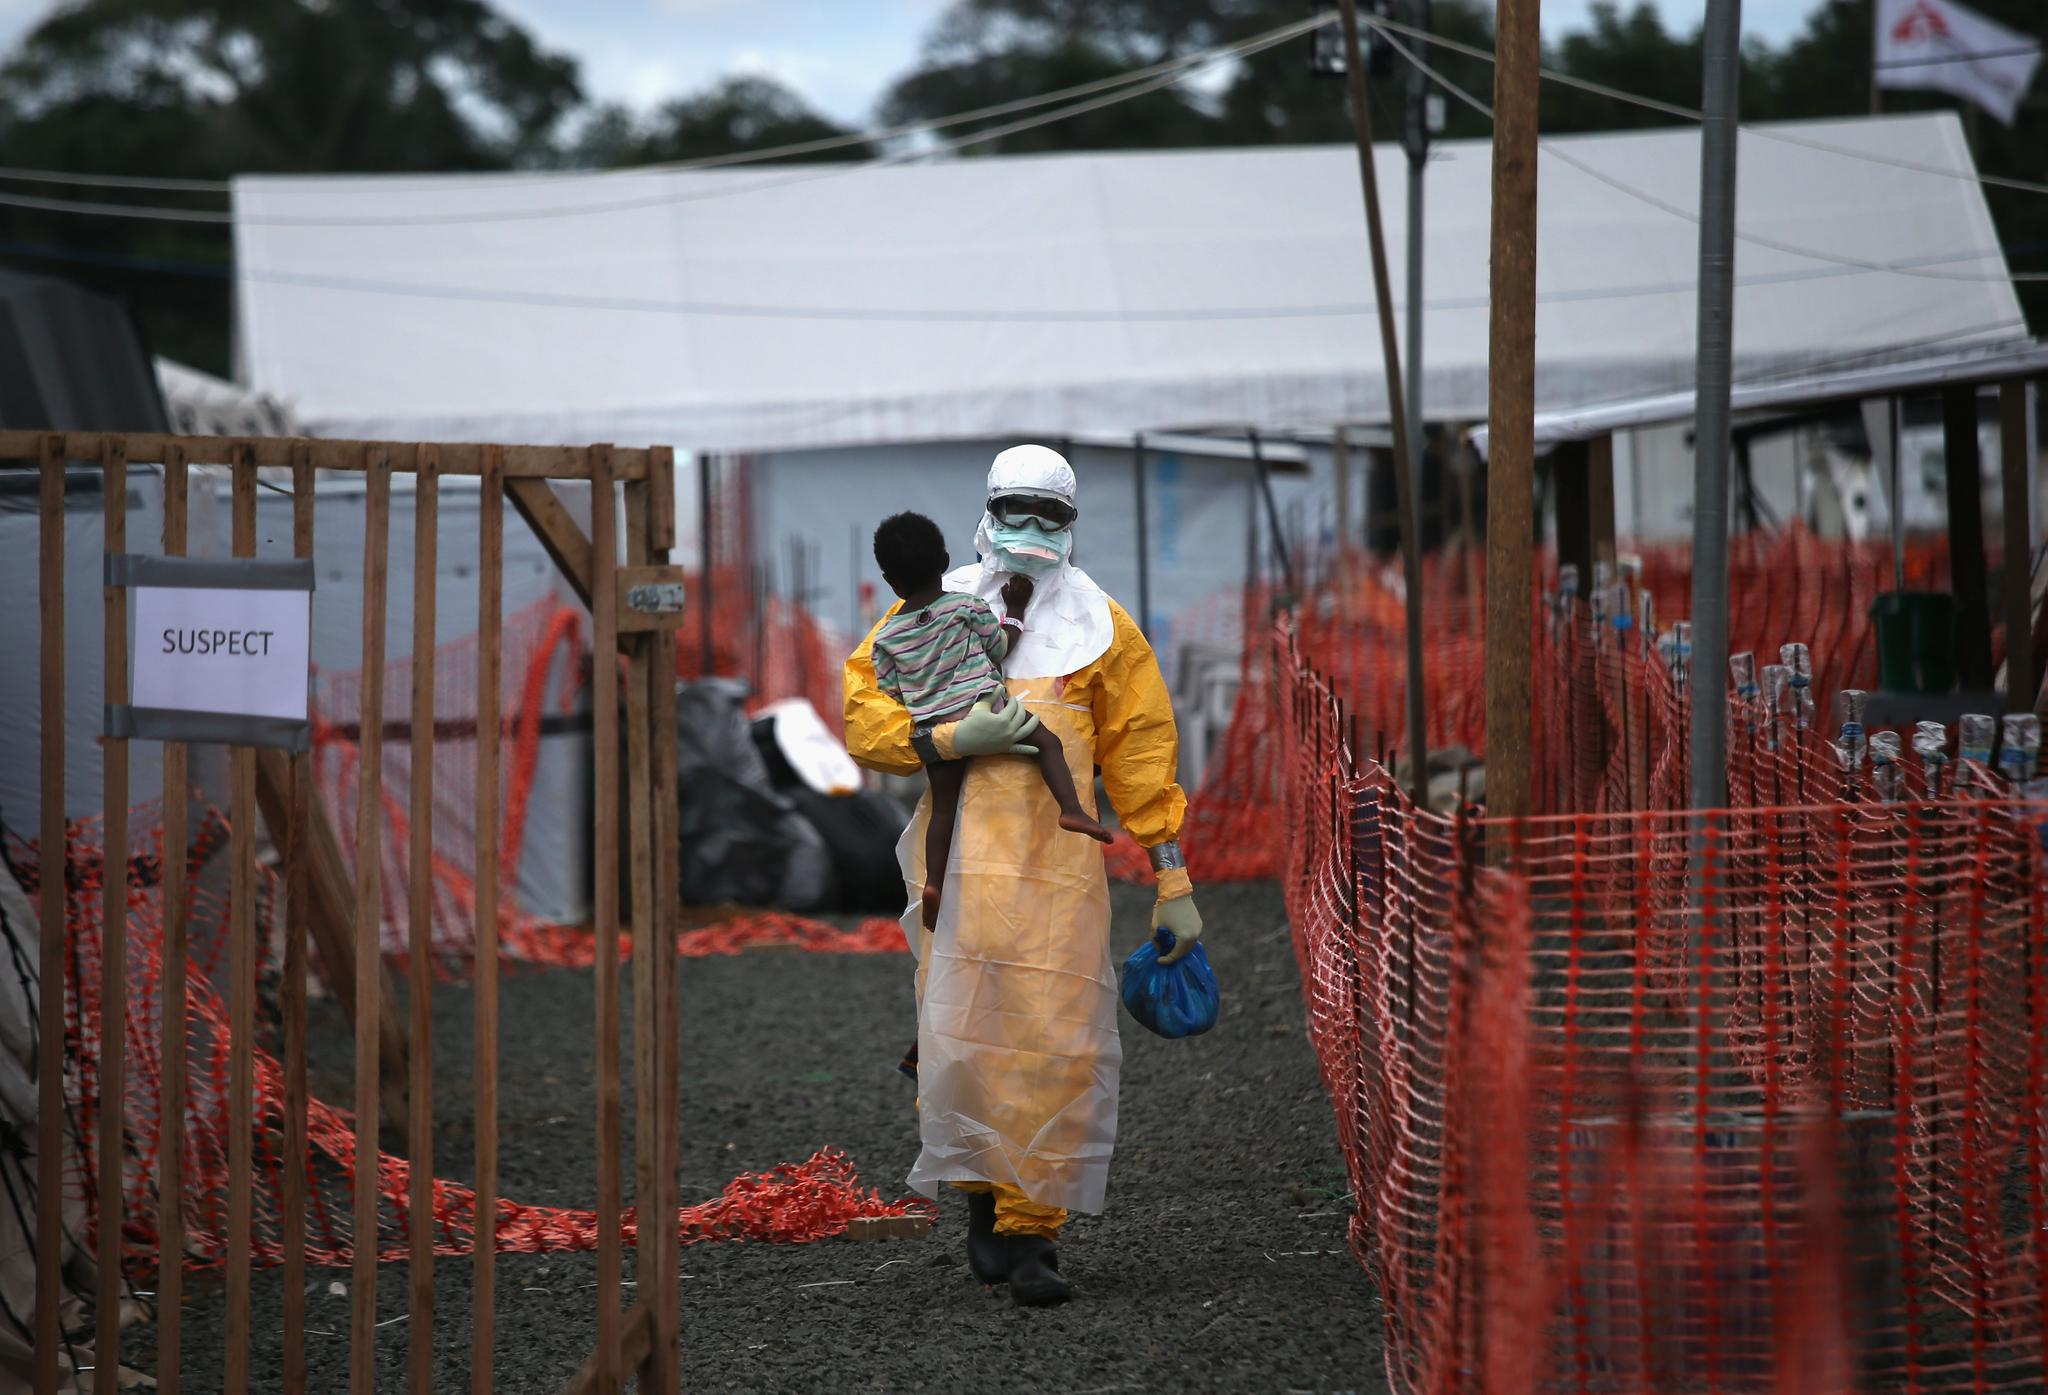 A Doctors Without Borders health worker carries a child suspected of having Ebola in October 5, 2014 in Paynesville, Liberia. A new scoring system that calculates the severity of an Ebola case could help fight outbreaks and save lives.